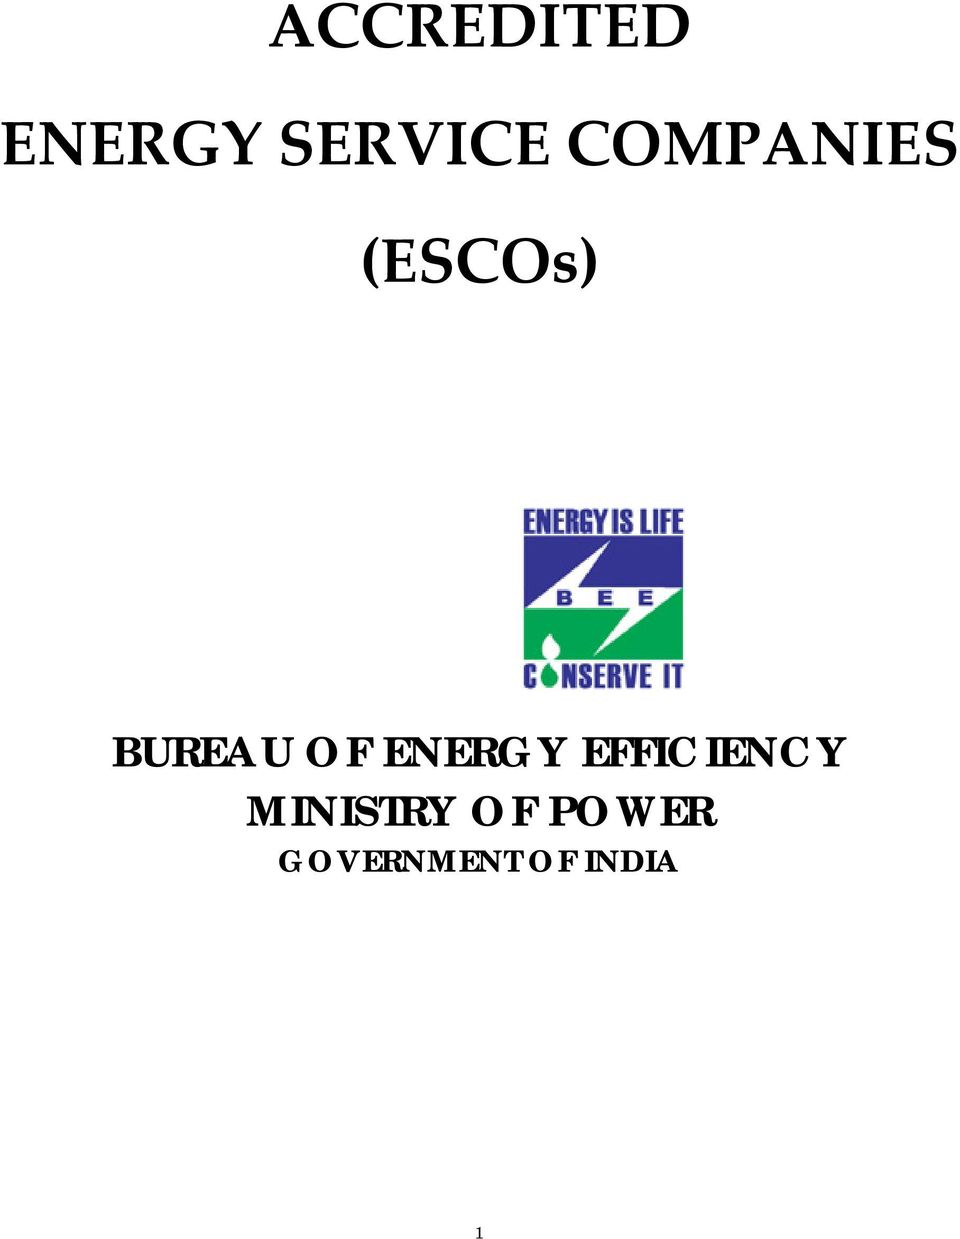 ENERGY EFFICIENCY MINISTRY